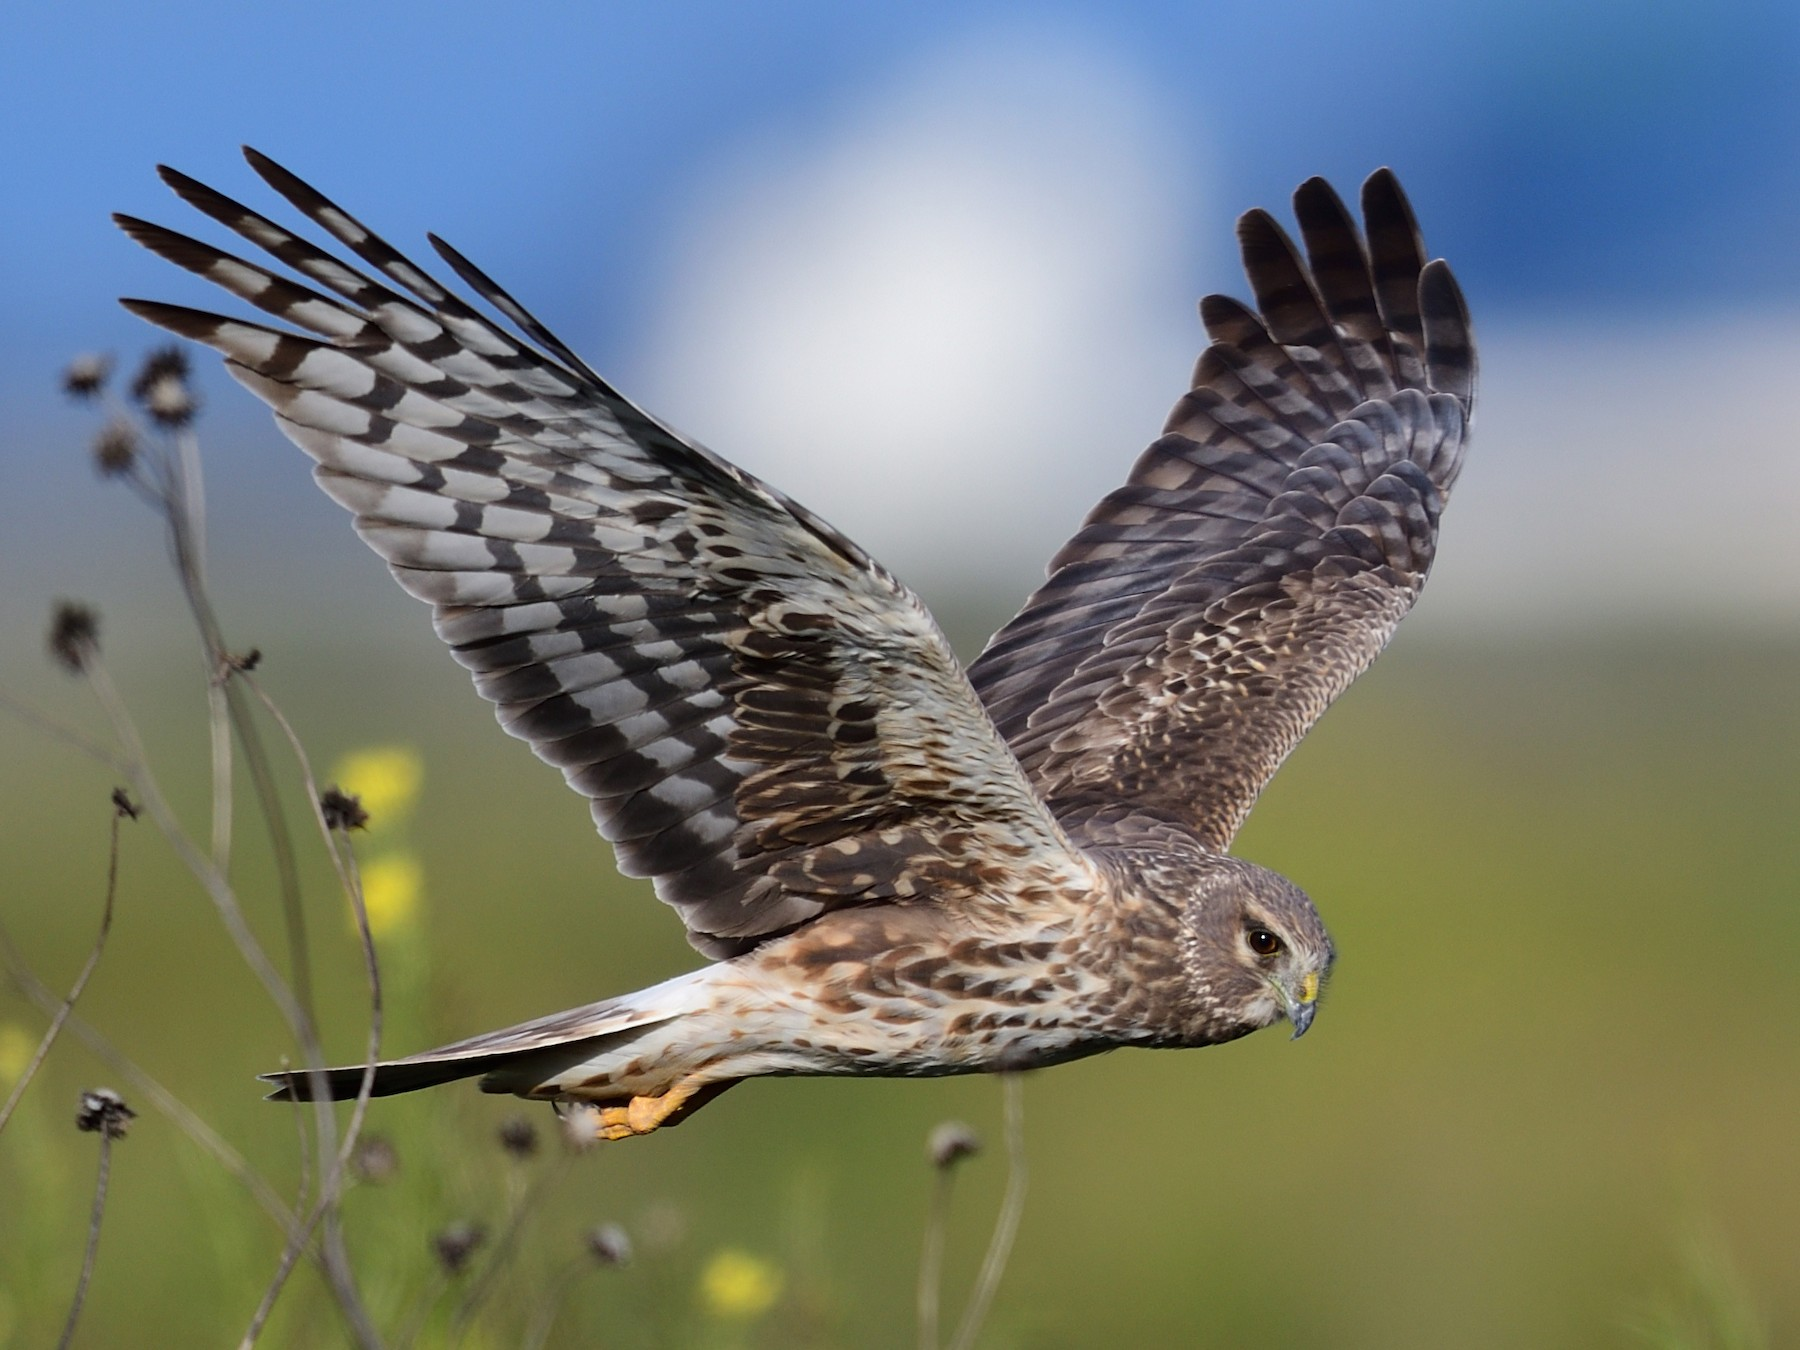 Northern Harrier - Song Yu